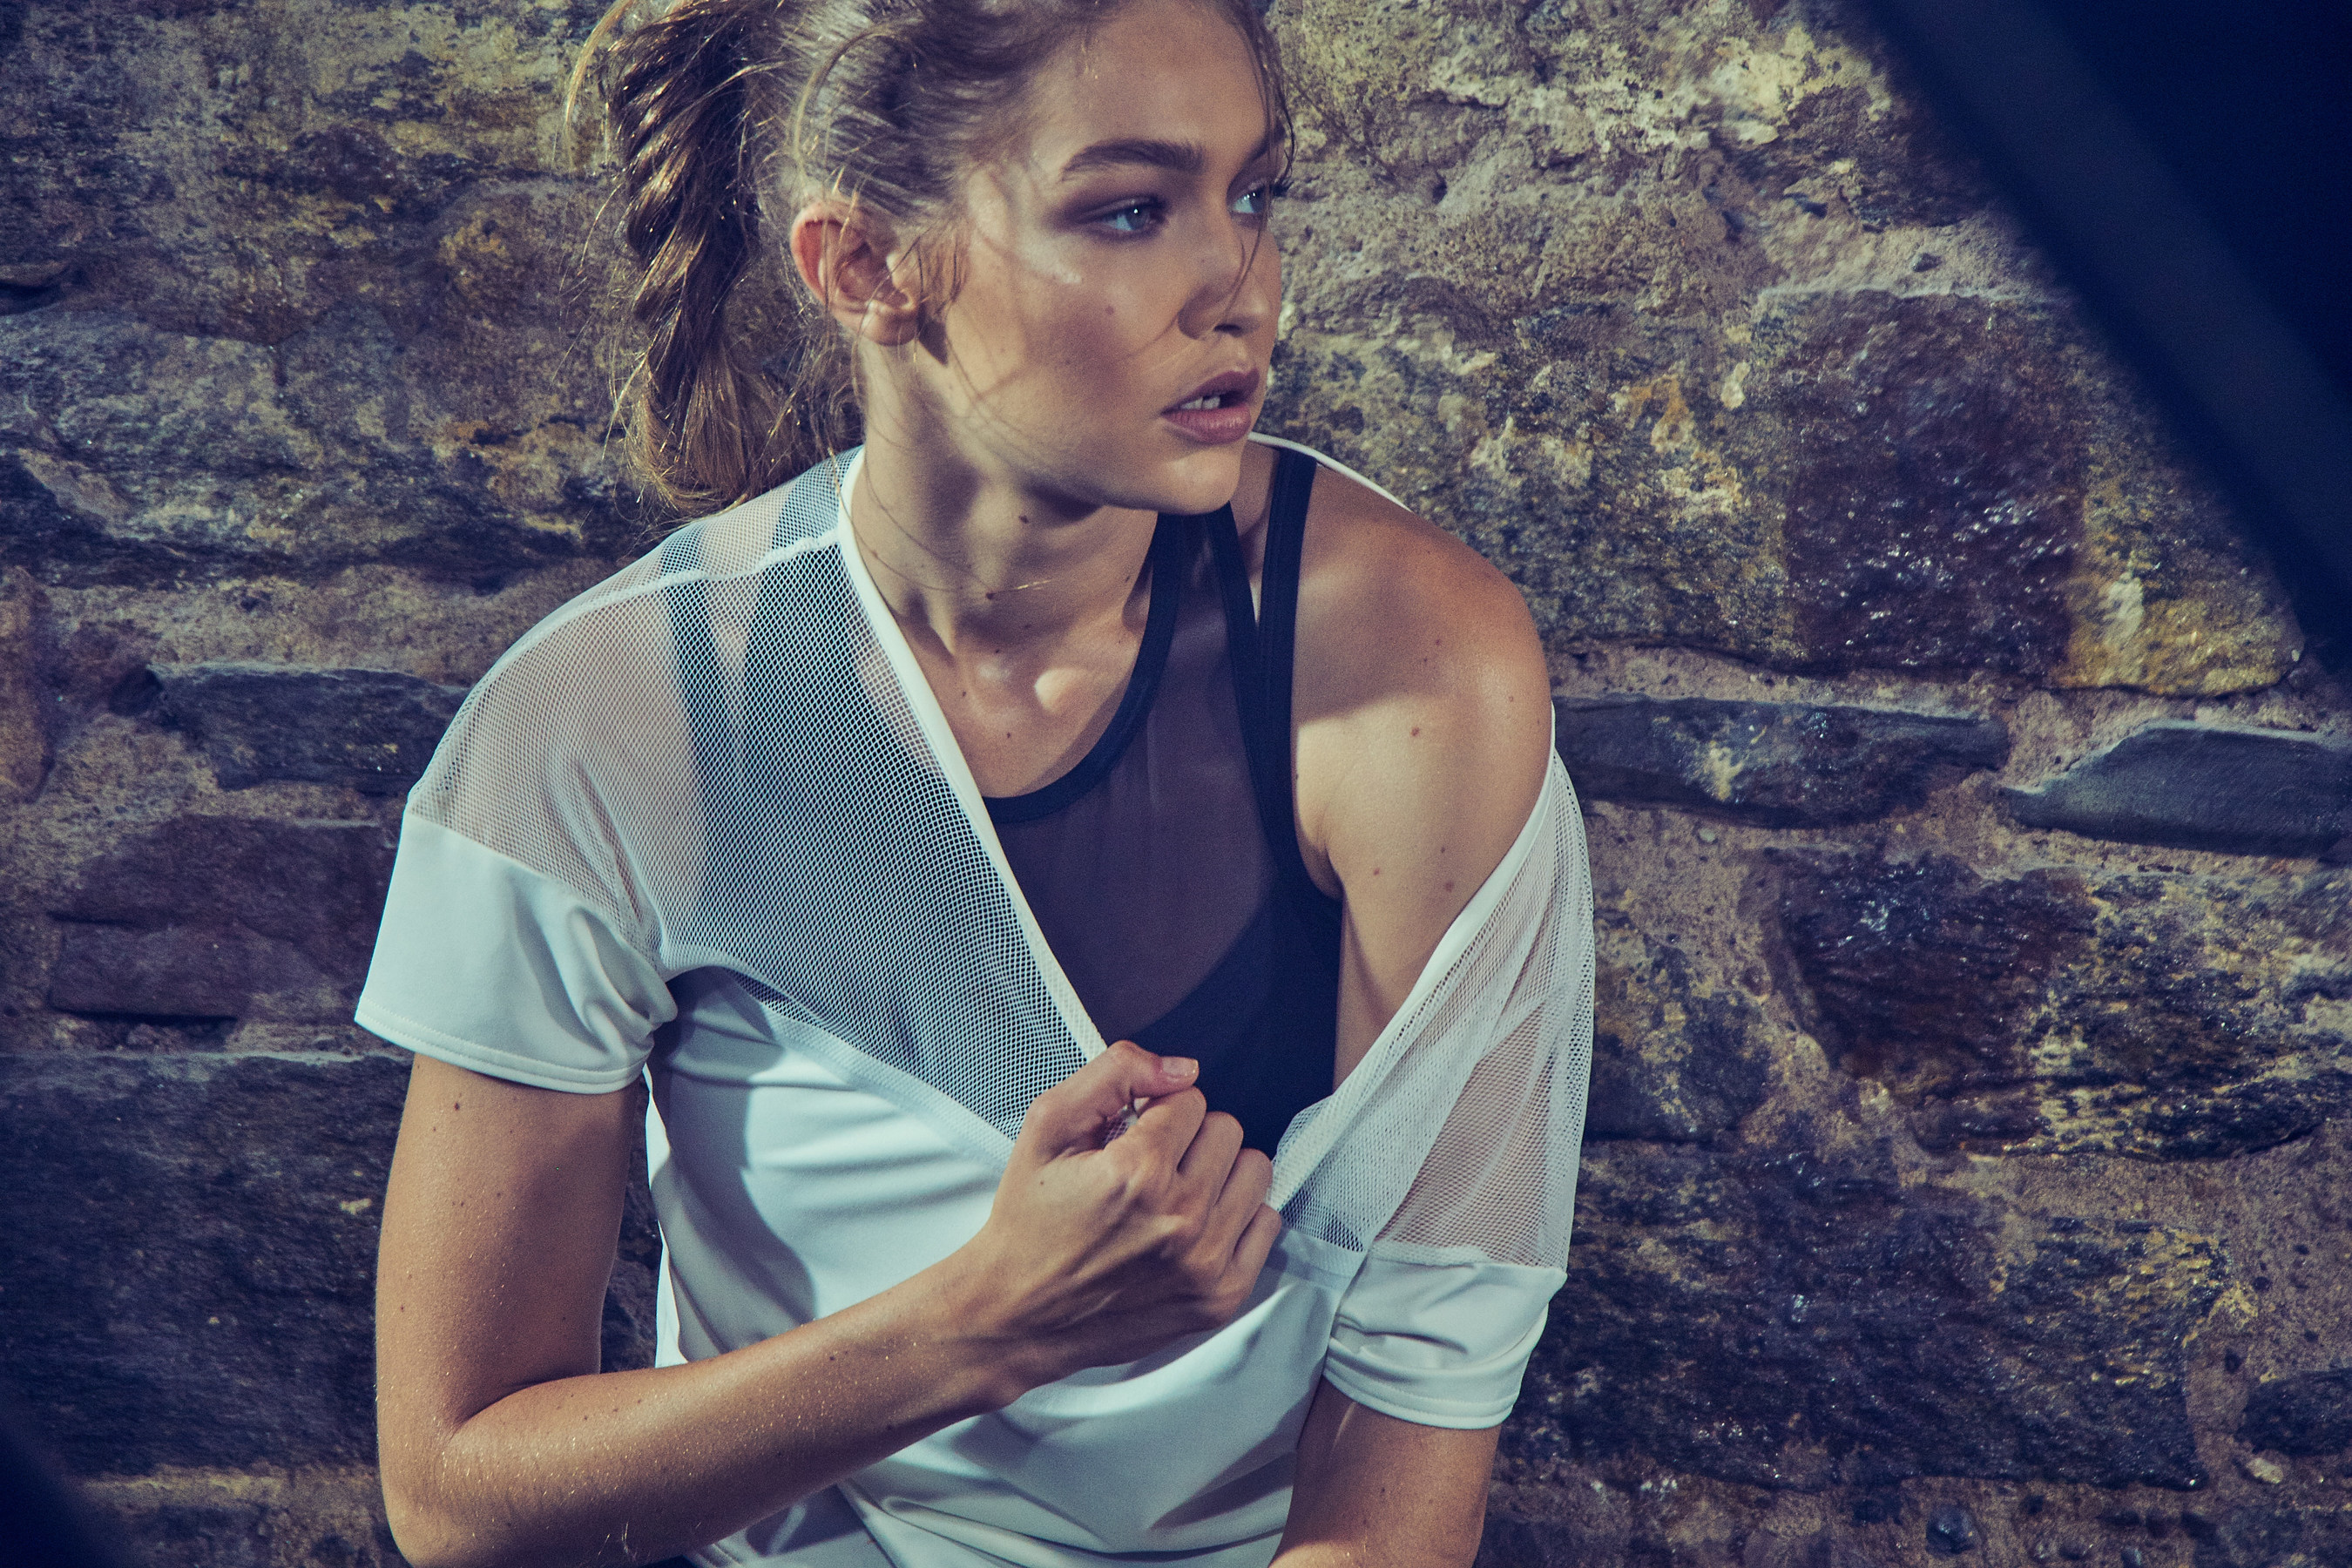 GIGI HADID JOINS FORCES WITH REEBOK TO TELL NEXT PHASE OF BE MORE HUMAN CAMPAIGN